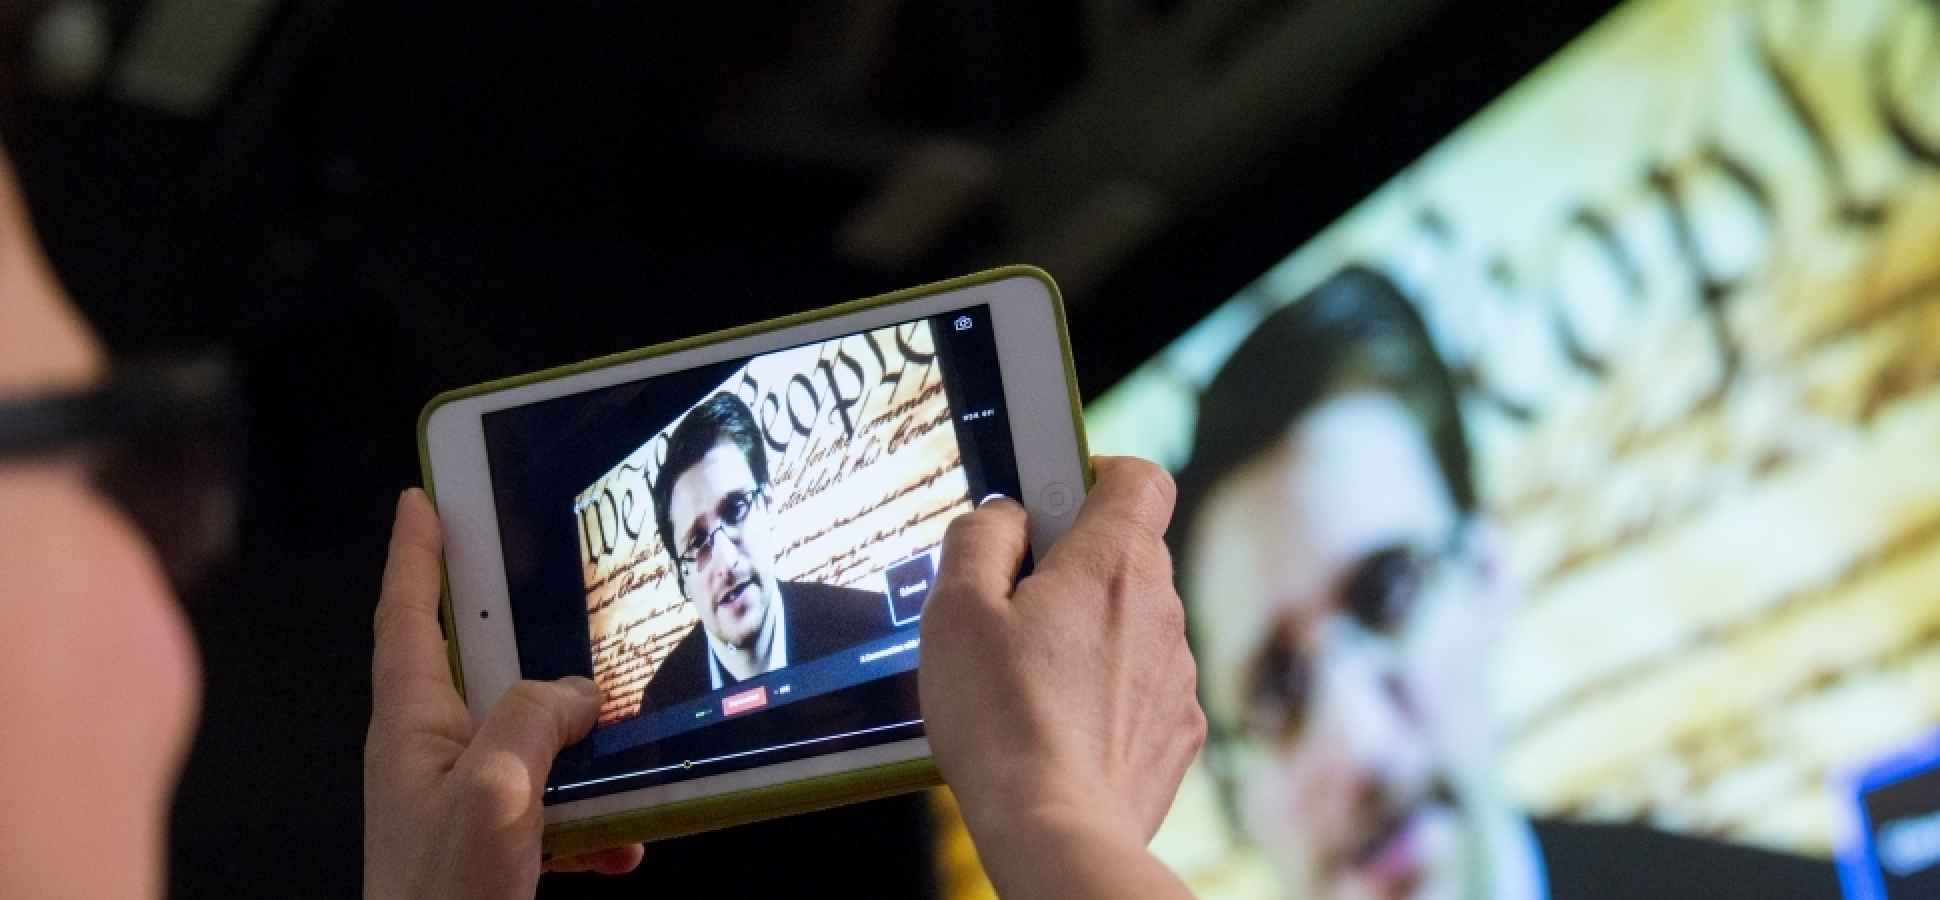 5 Online Privacy Tips From Edward Snowden